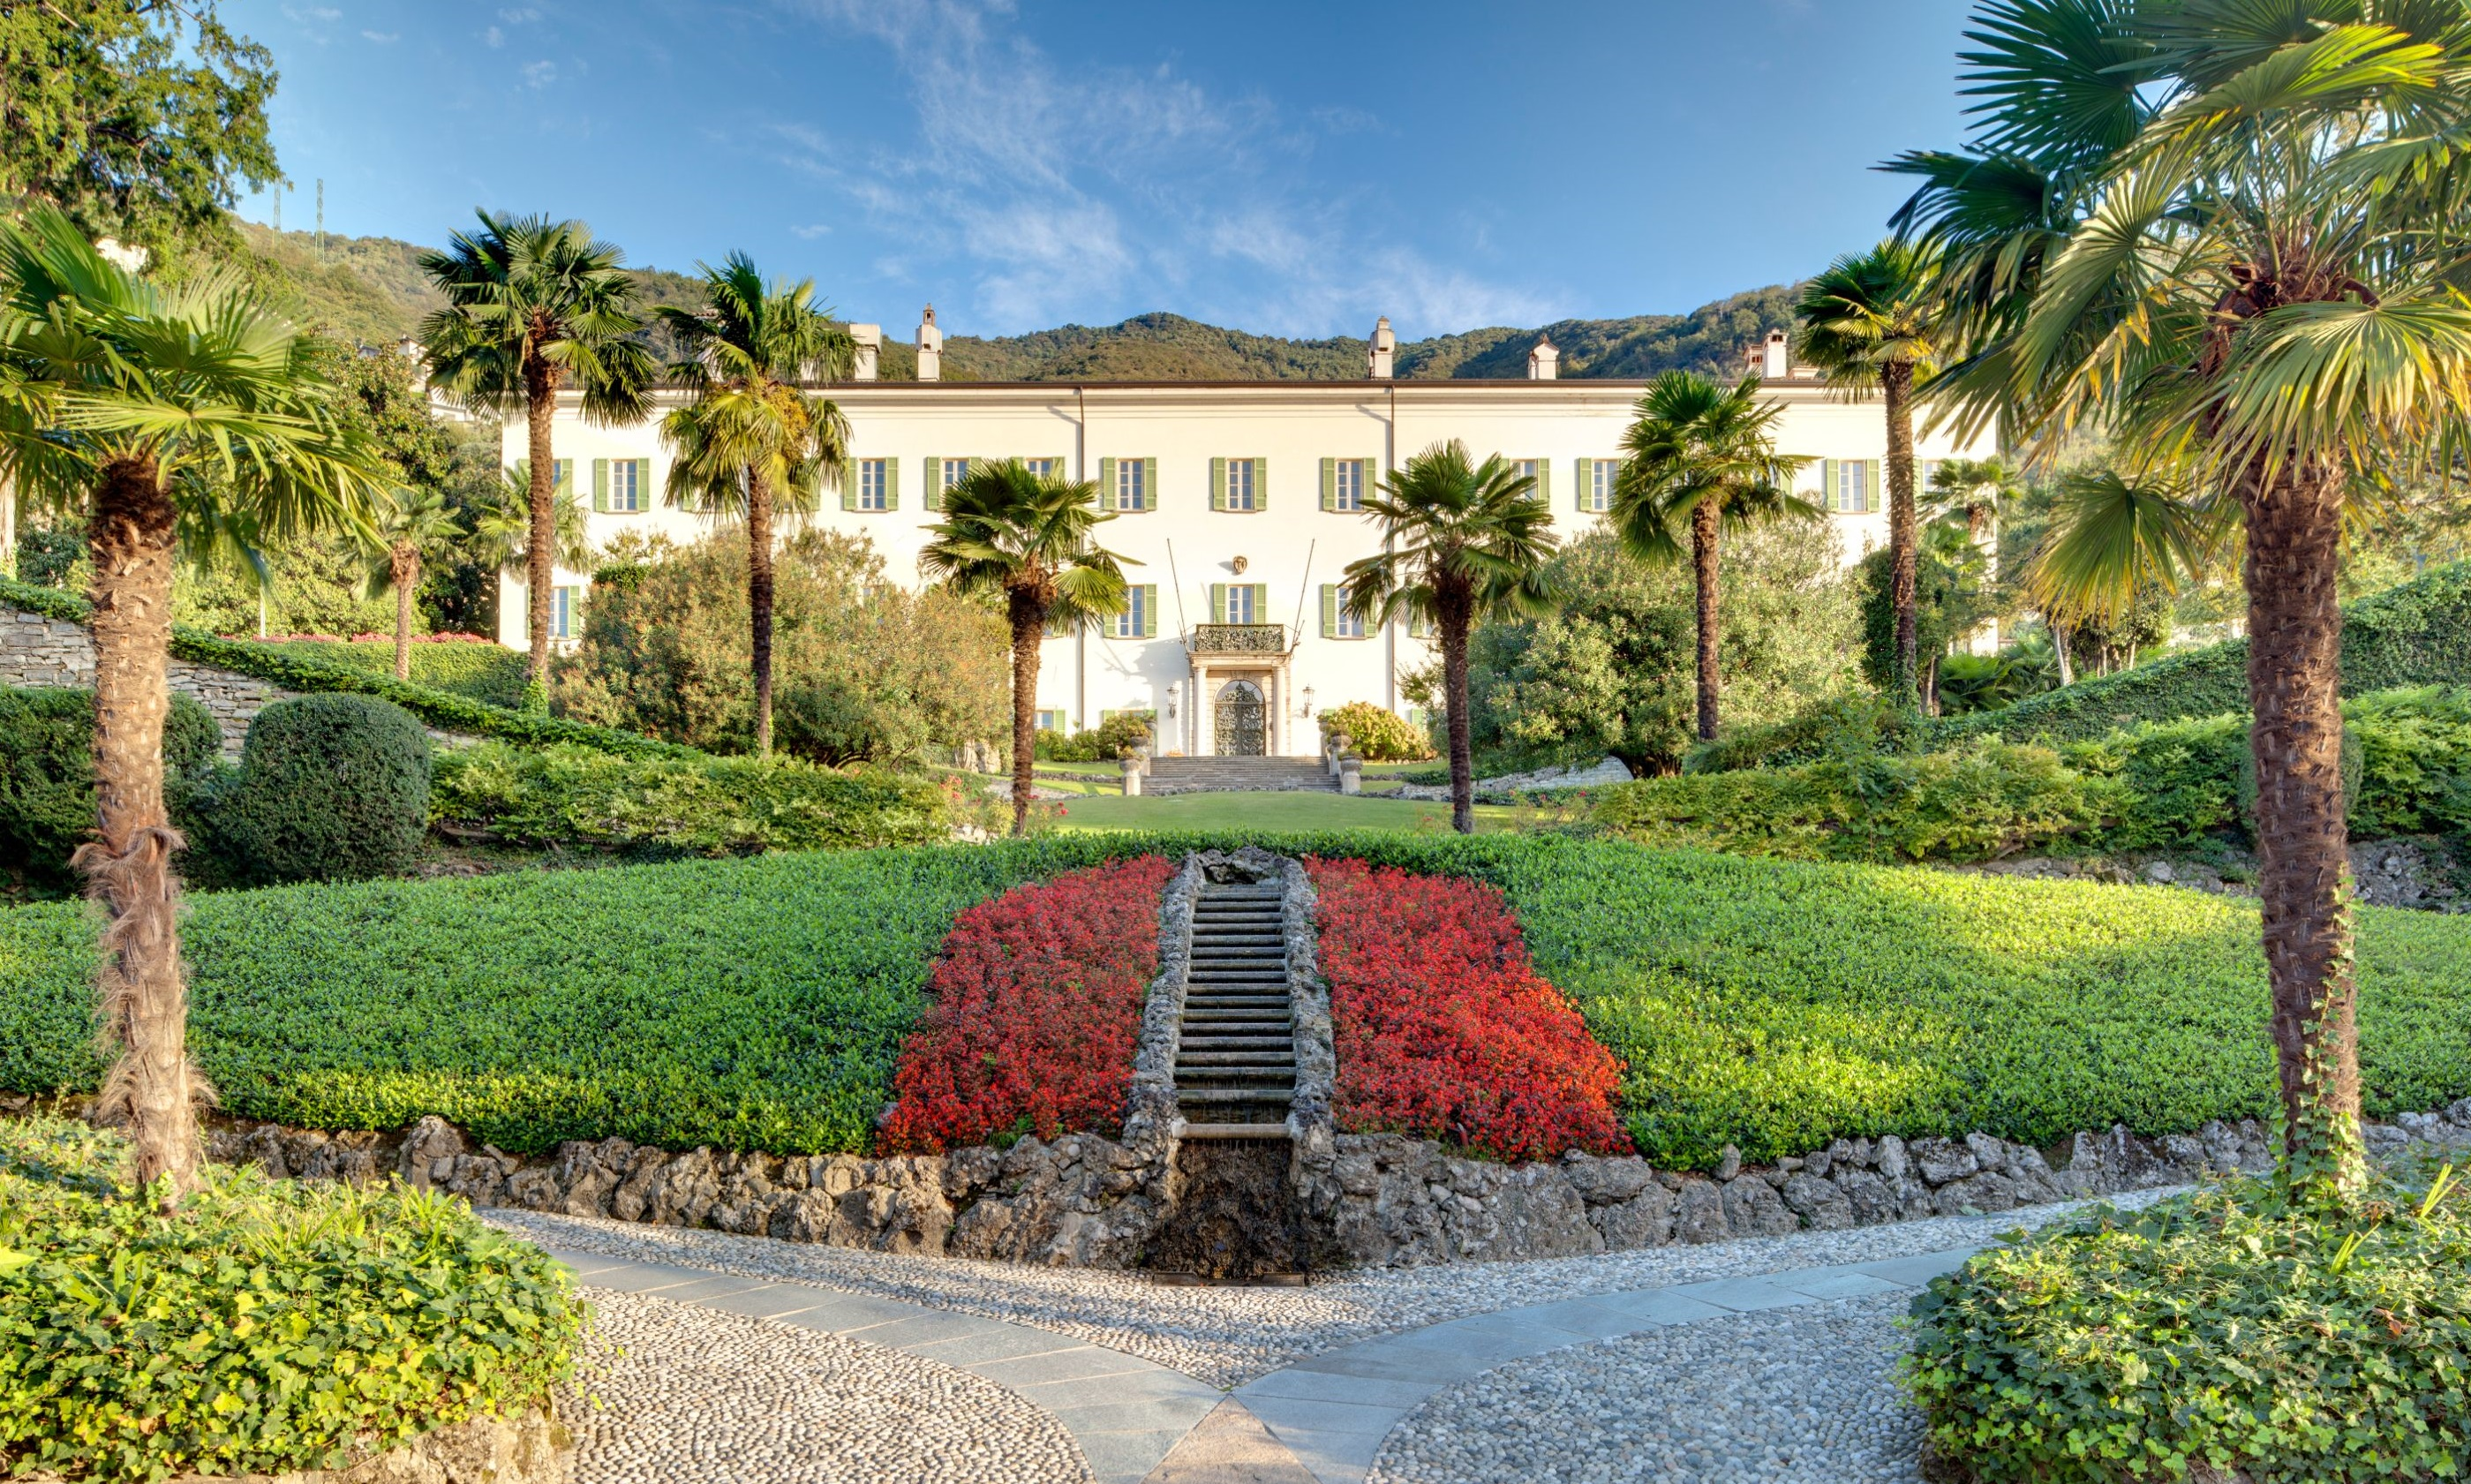 Discover this historic hotel's Art Nouveau architecture on the shores of Lake Como.